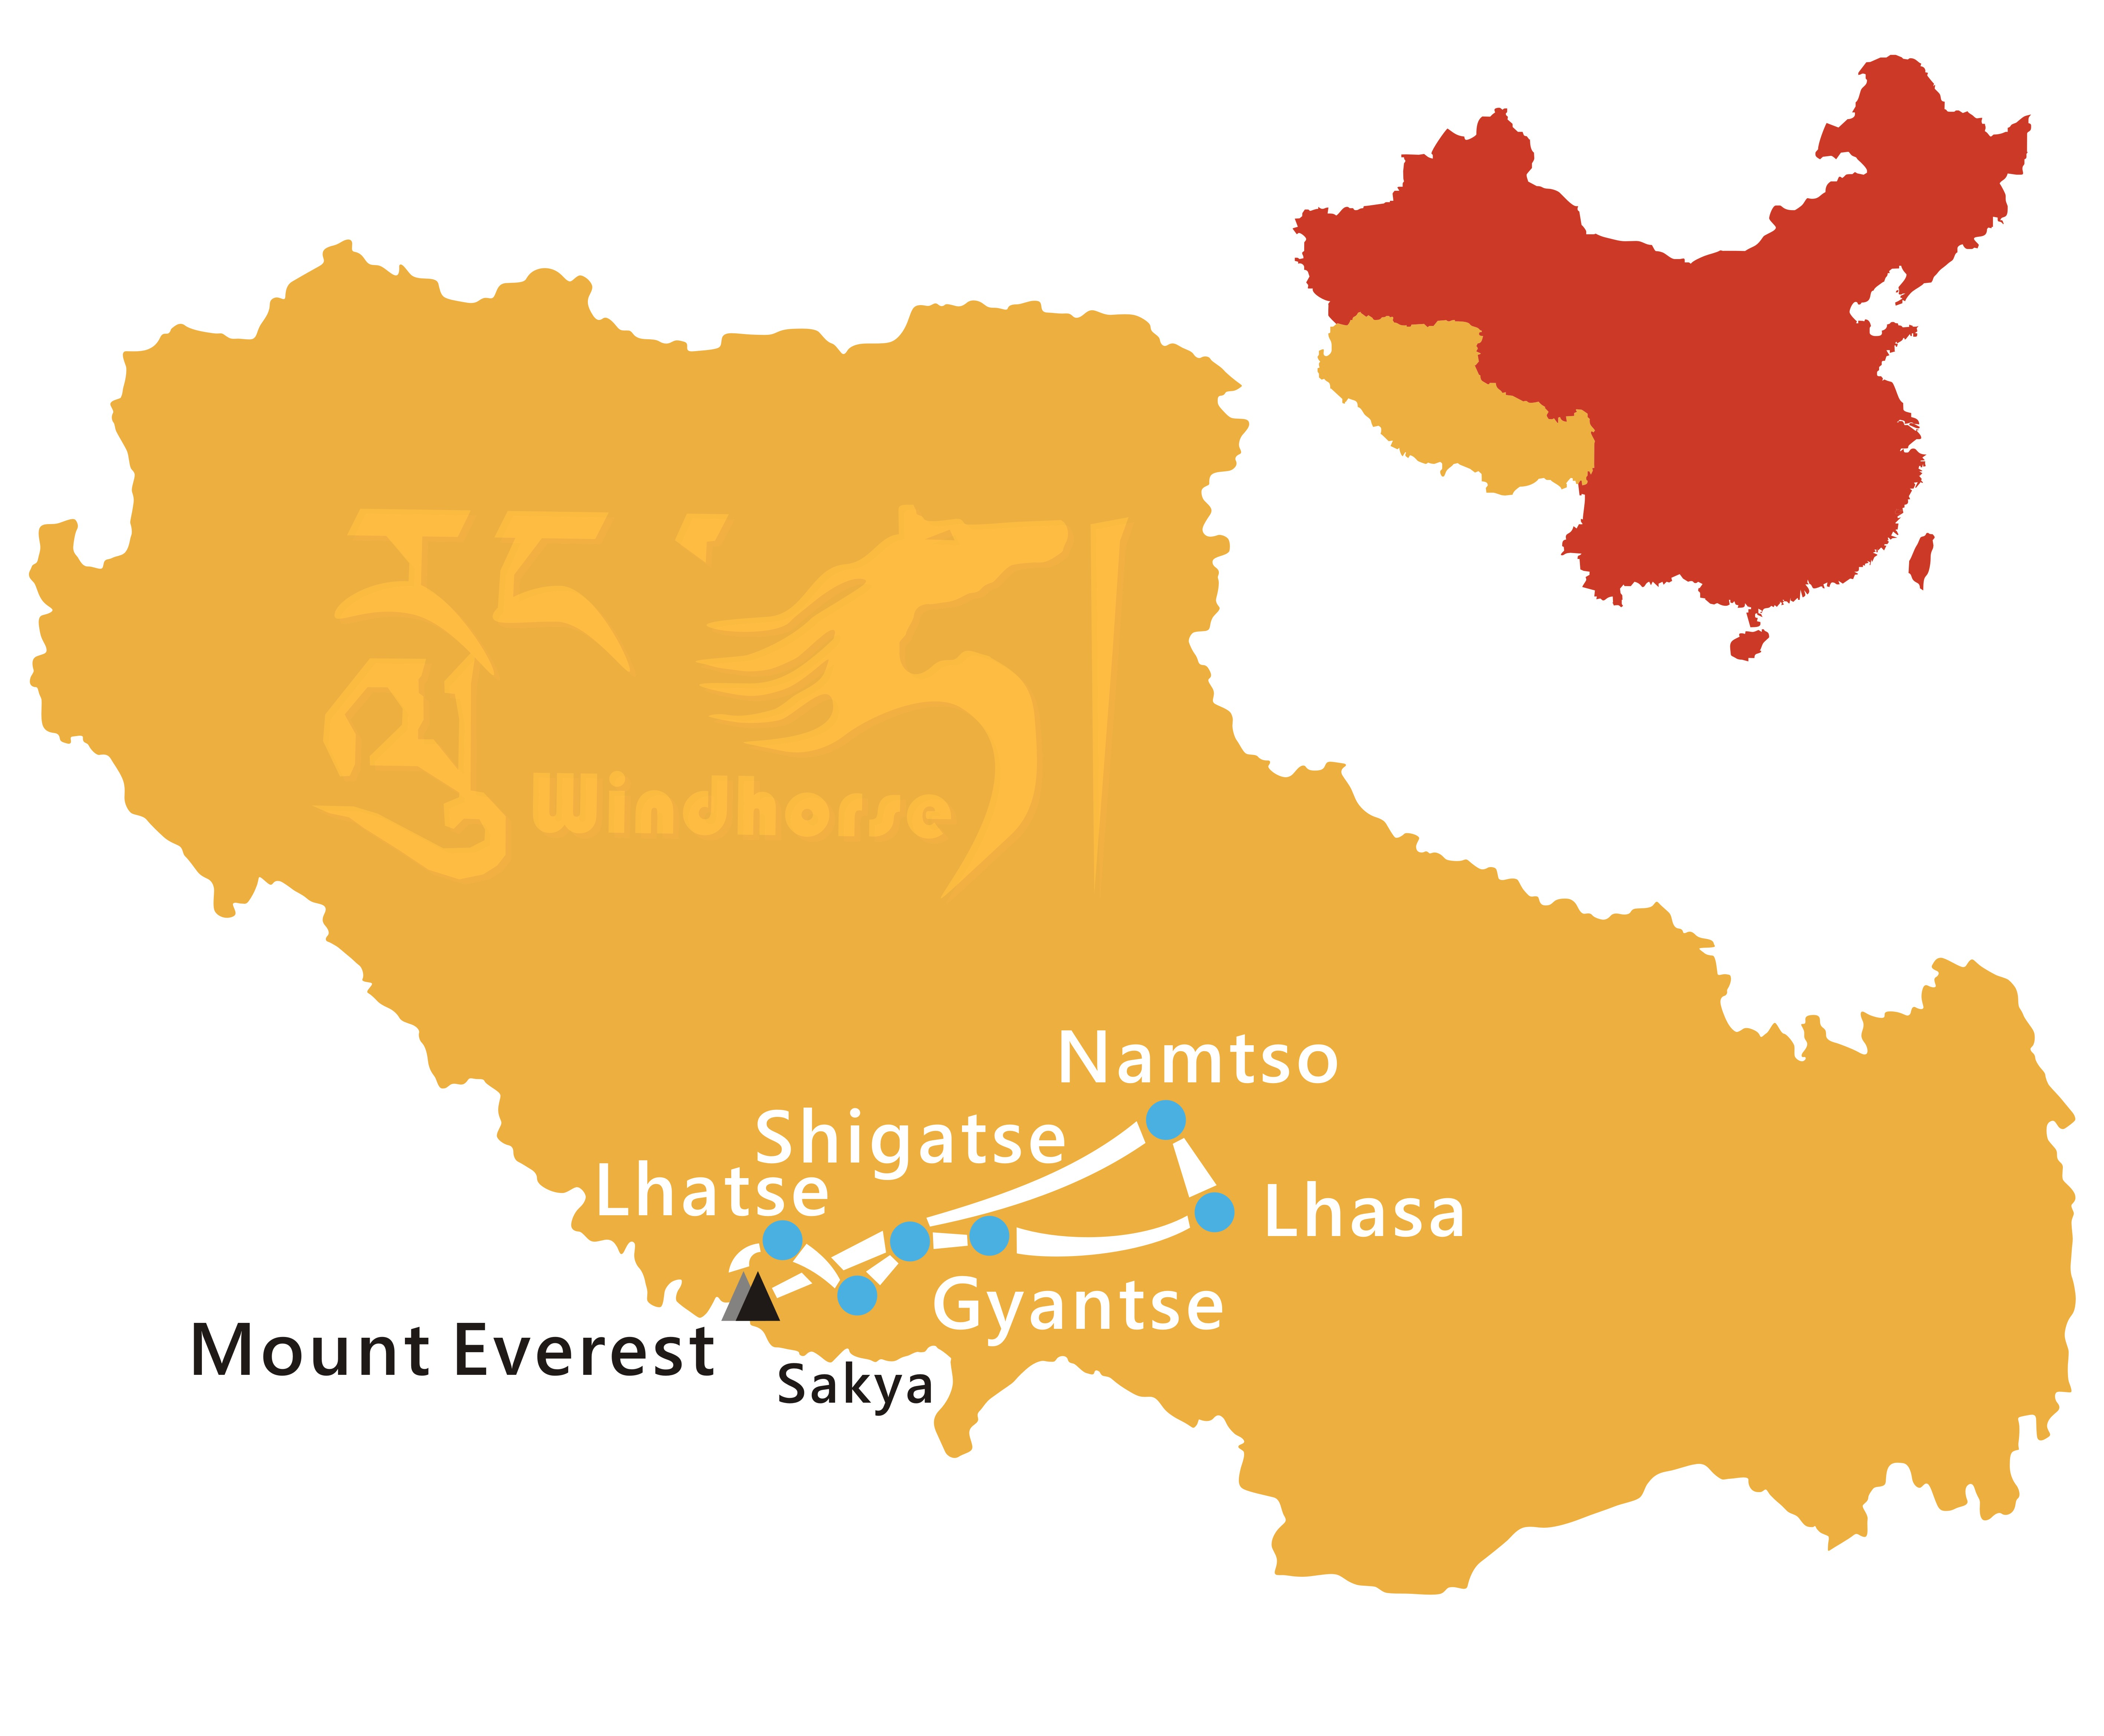 Mount Everest with Namtso Tour Route